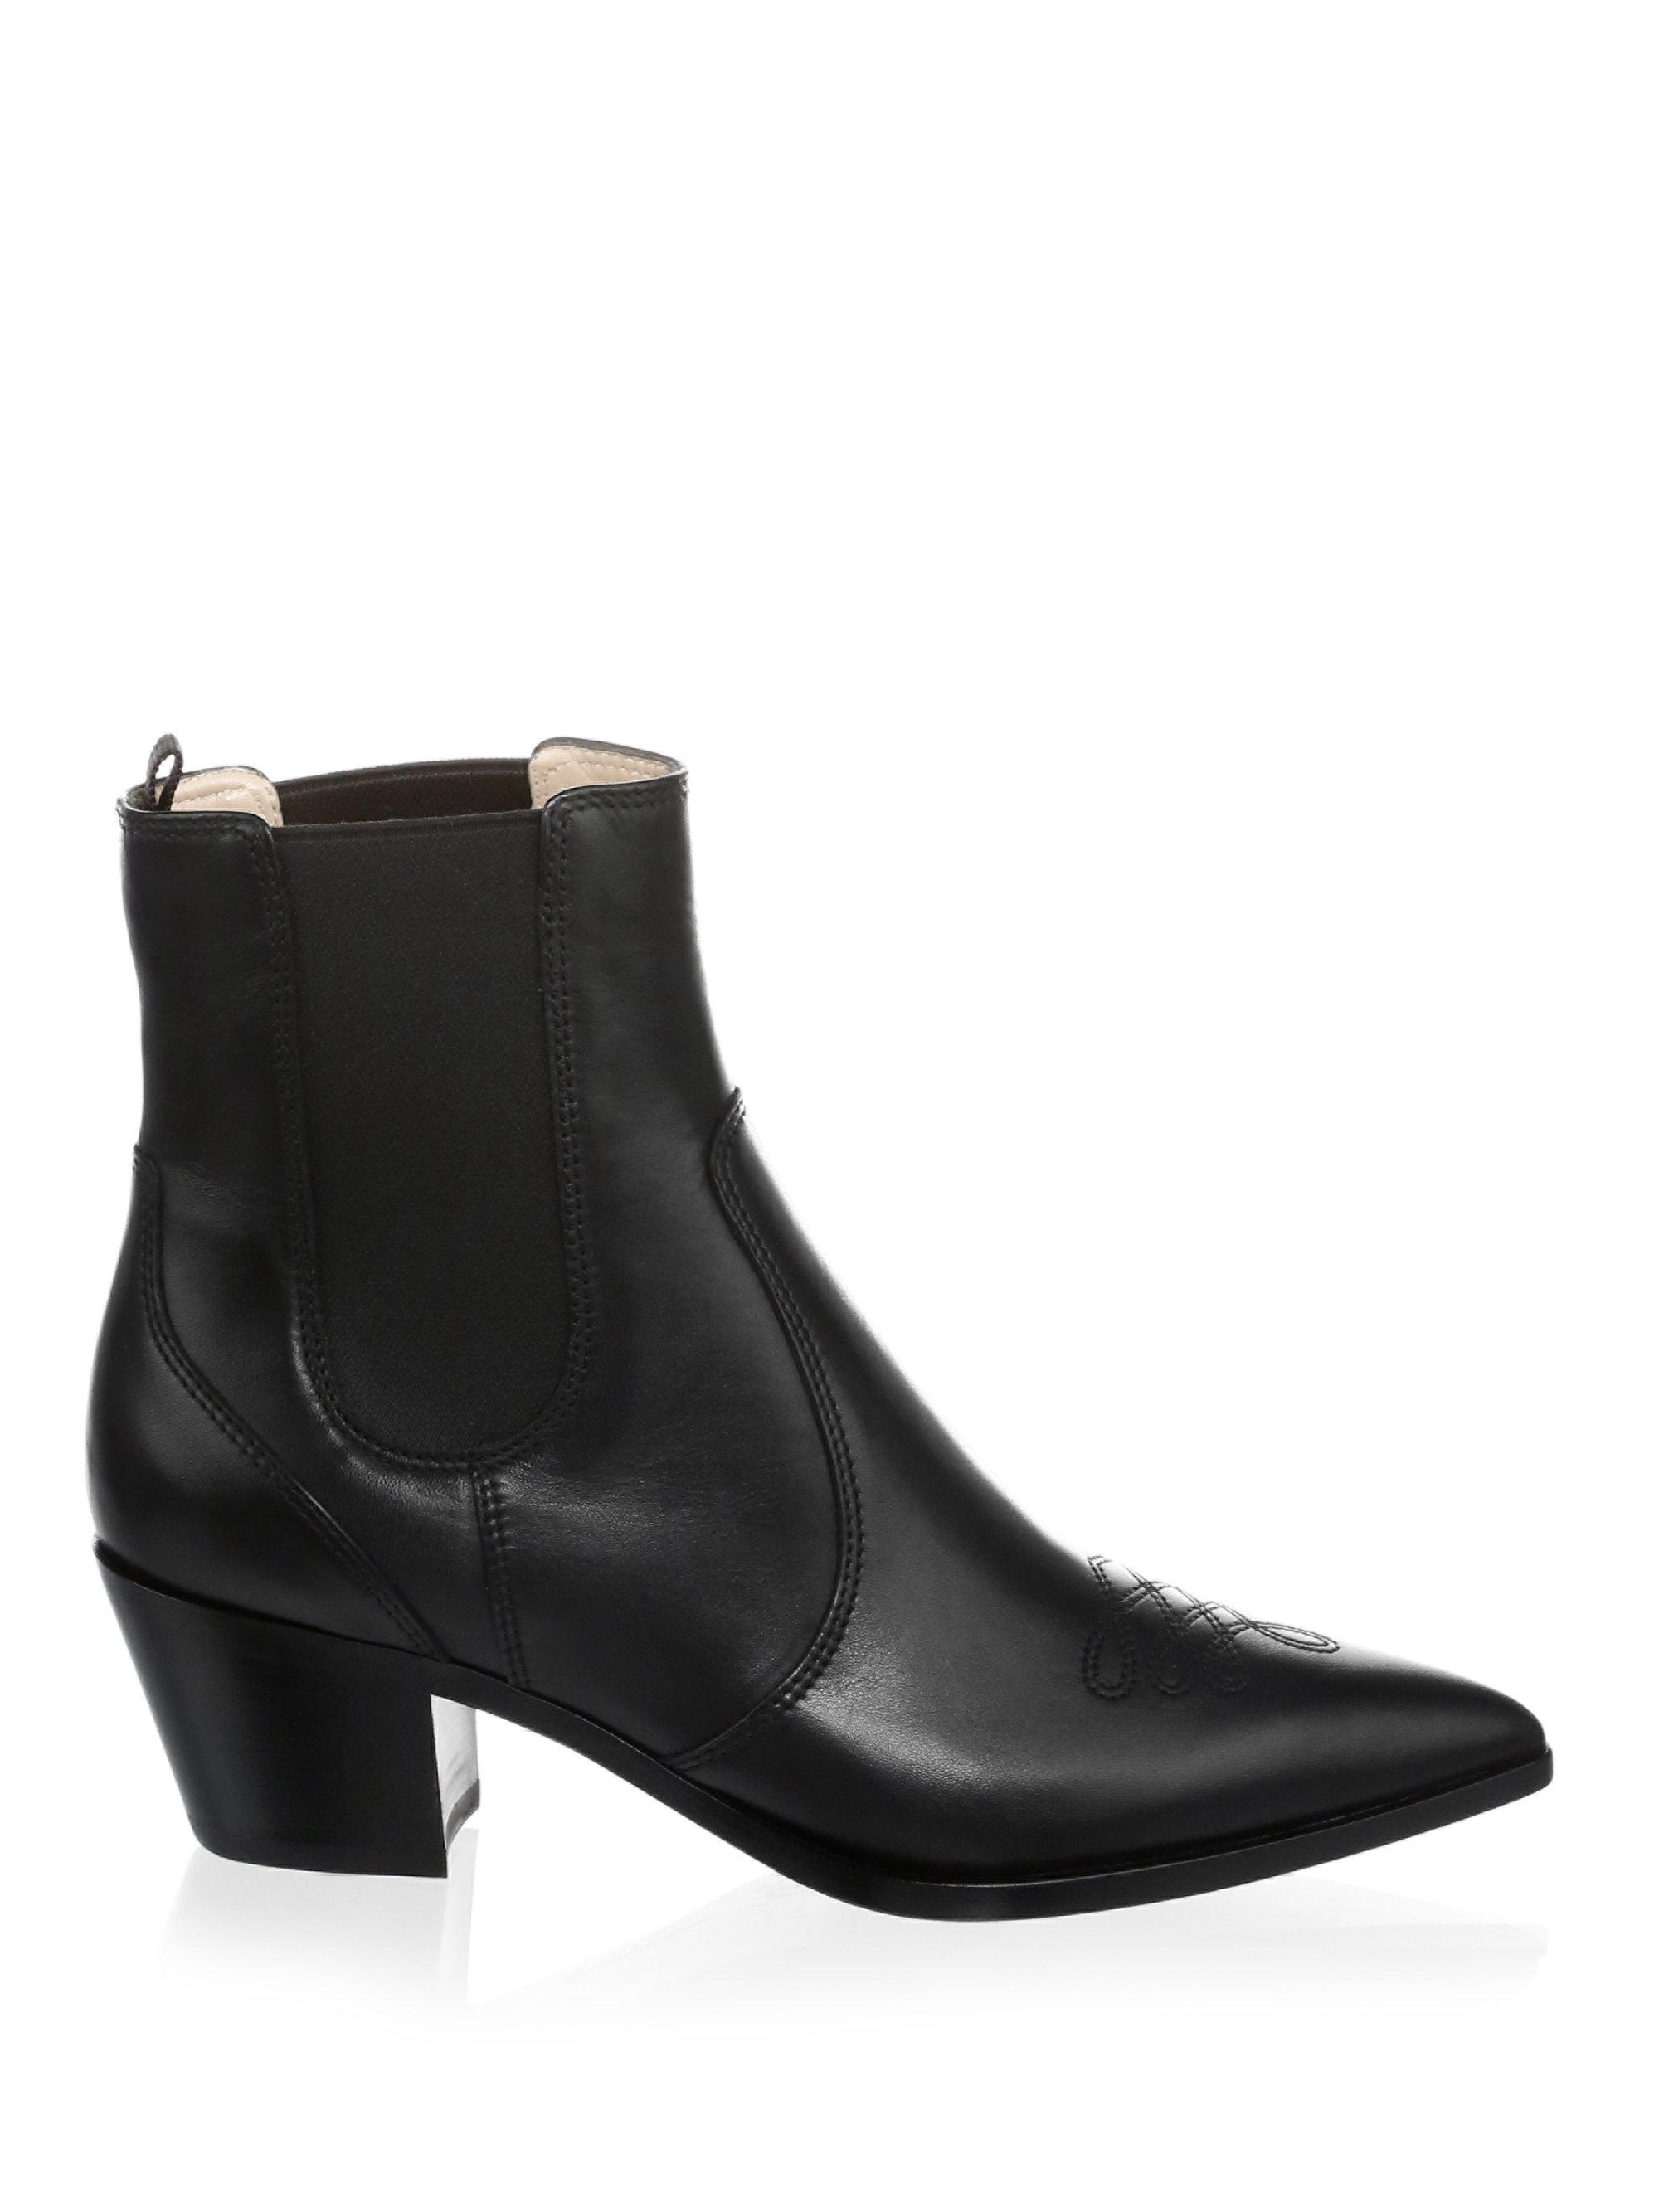 Gianvito Rossi Chelsea Leather Suede Boots M9Yss